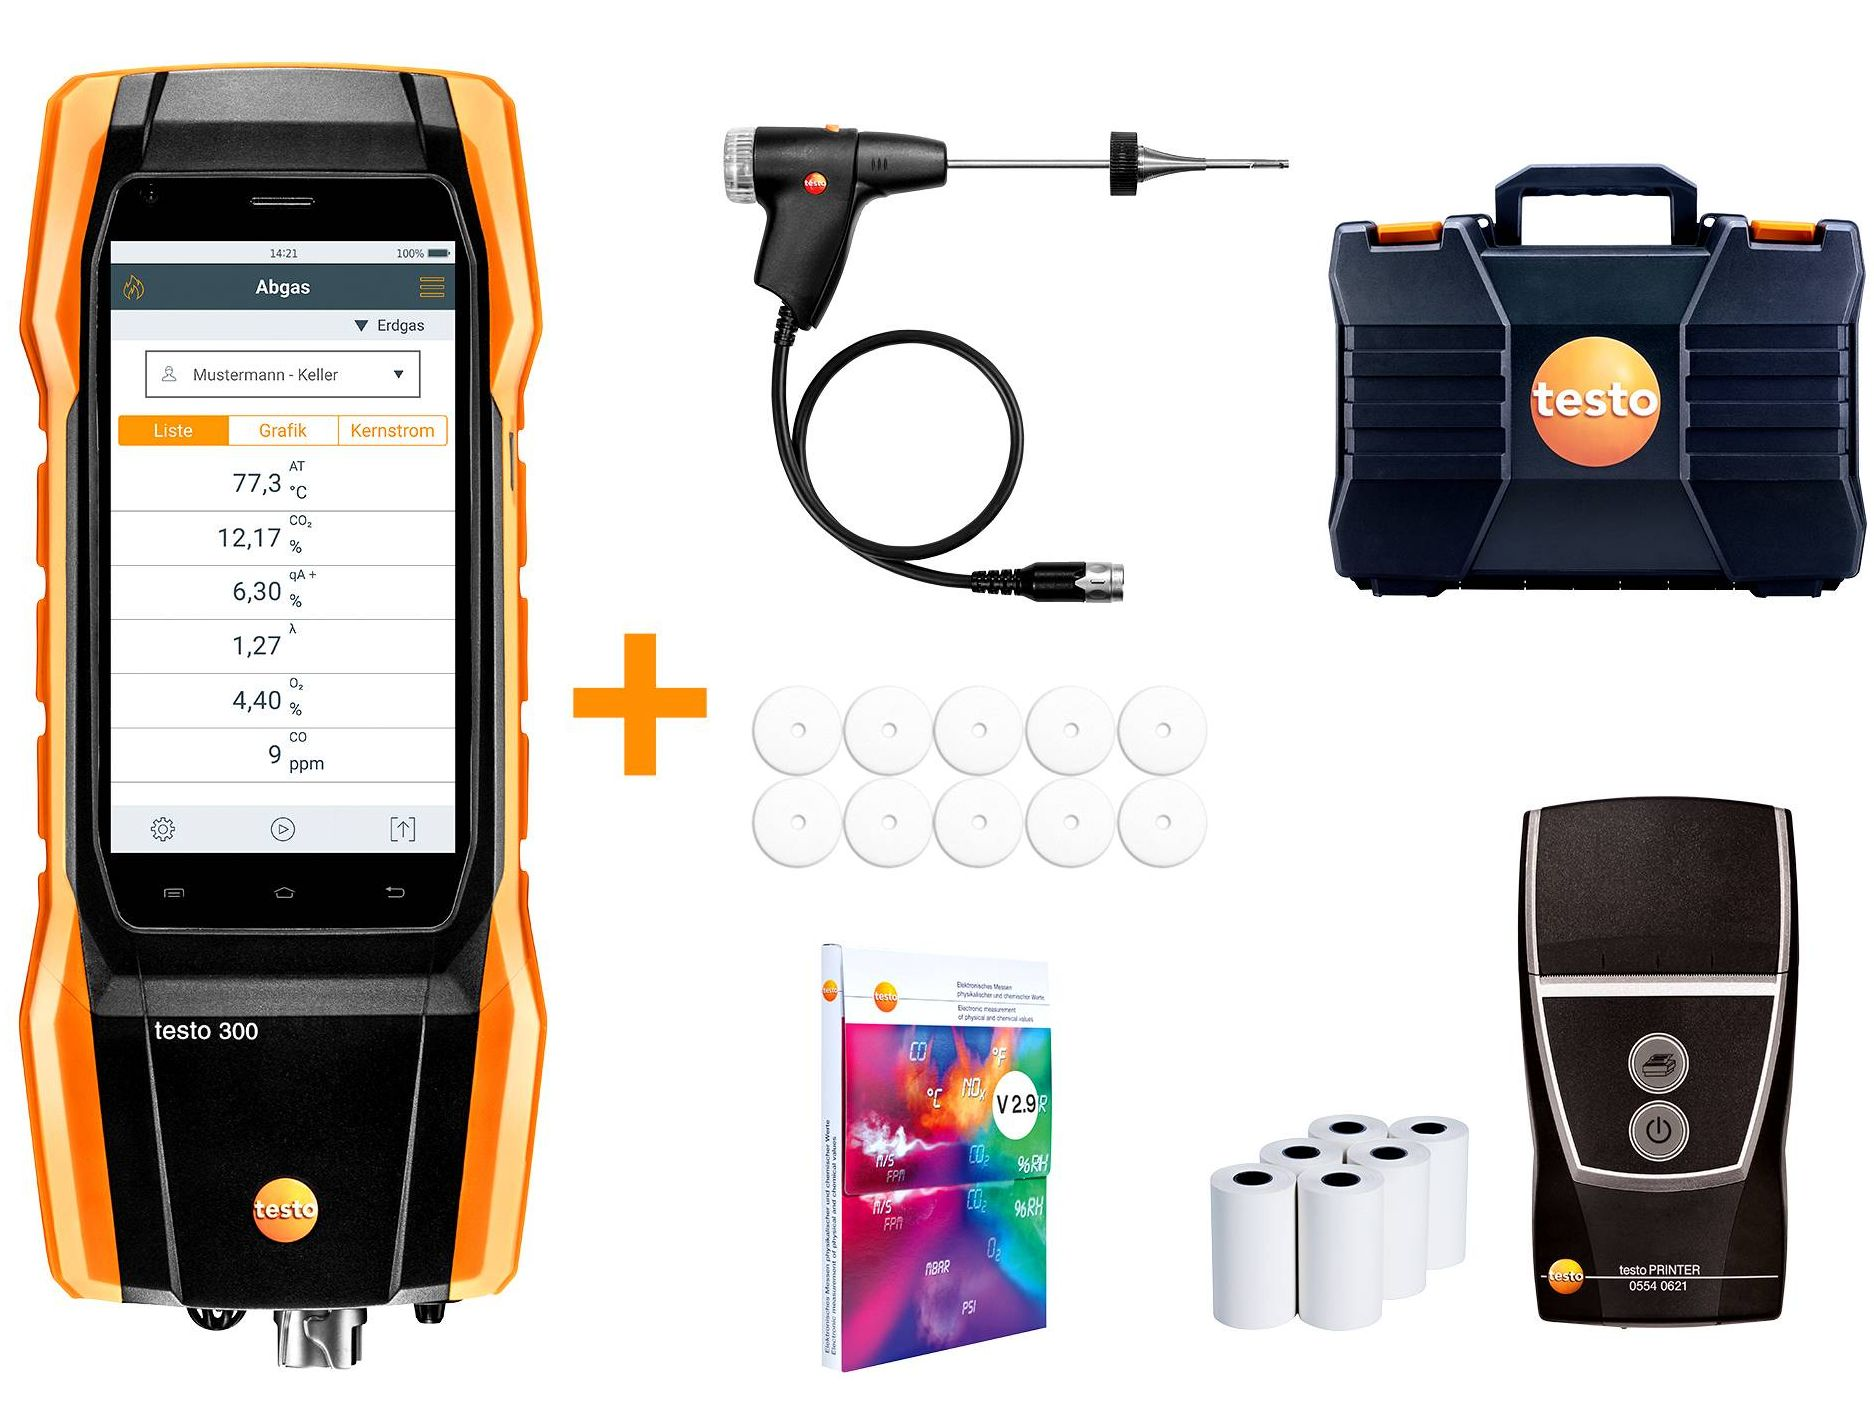 testo-300-Longlife-Set-2-with-printer.jpg